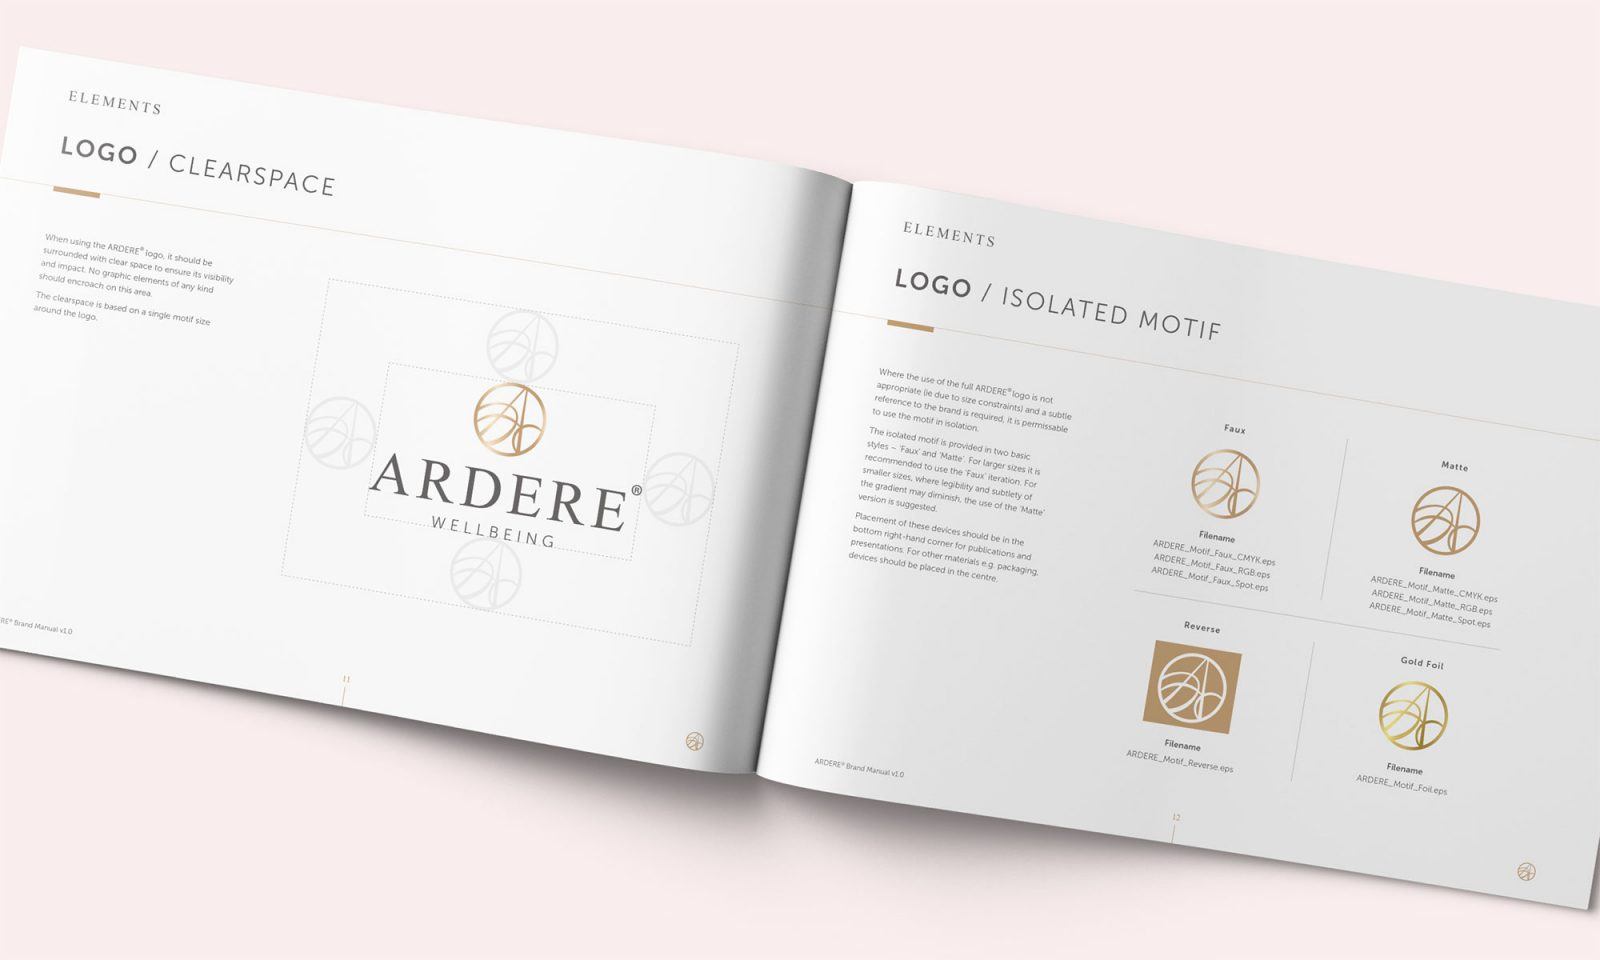 Ardere brand manual spread showing logo structure and variants